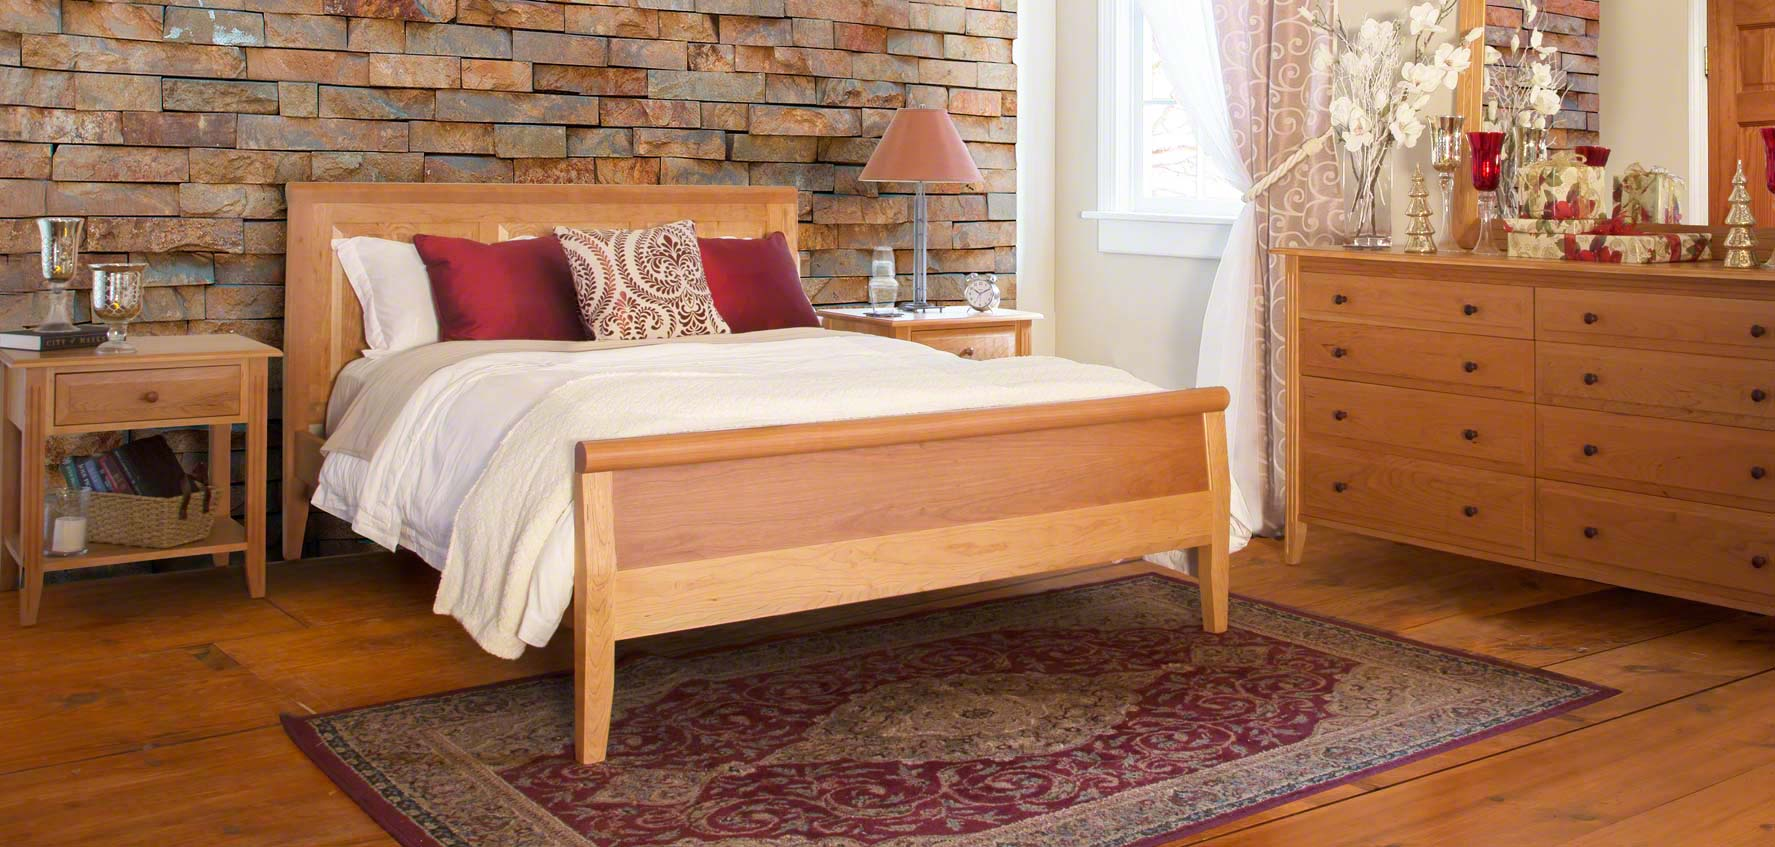 pictures of bedroom sets. Bedroom Sets Solid Wood Furniture  Vermont Woods Studios